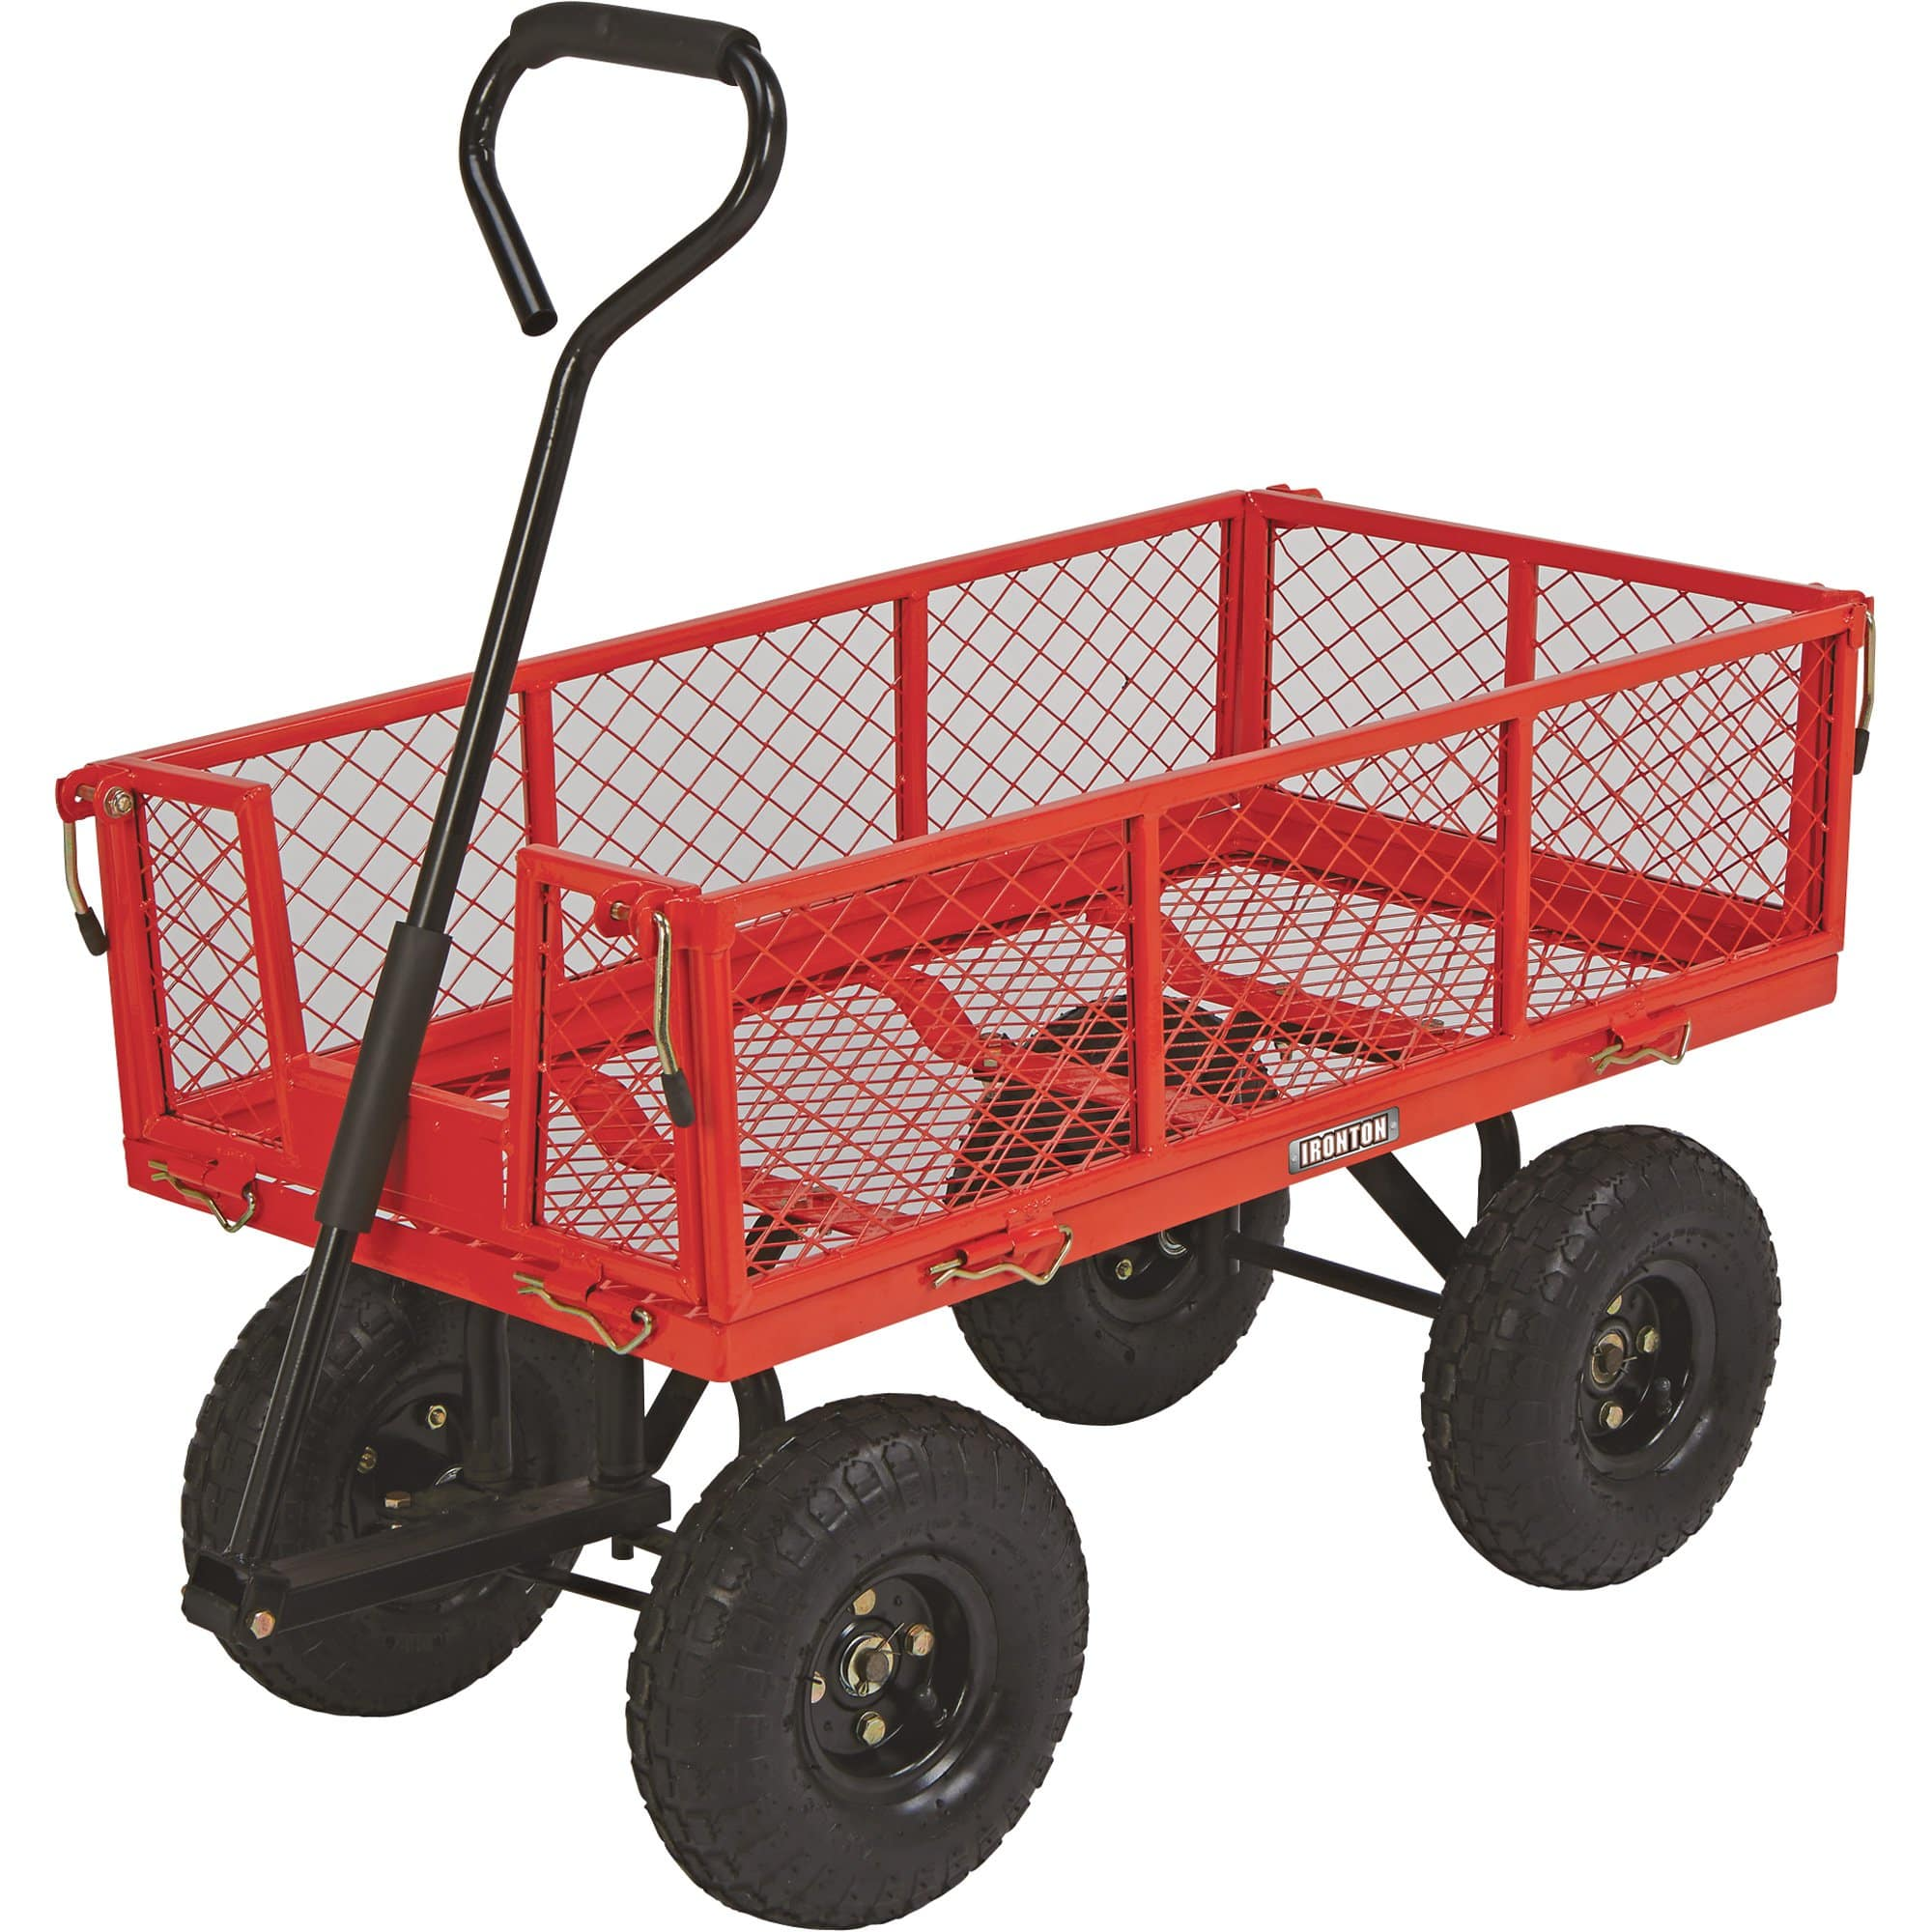 Ironton Steel Garden Wagon ($49 shipped)